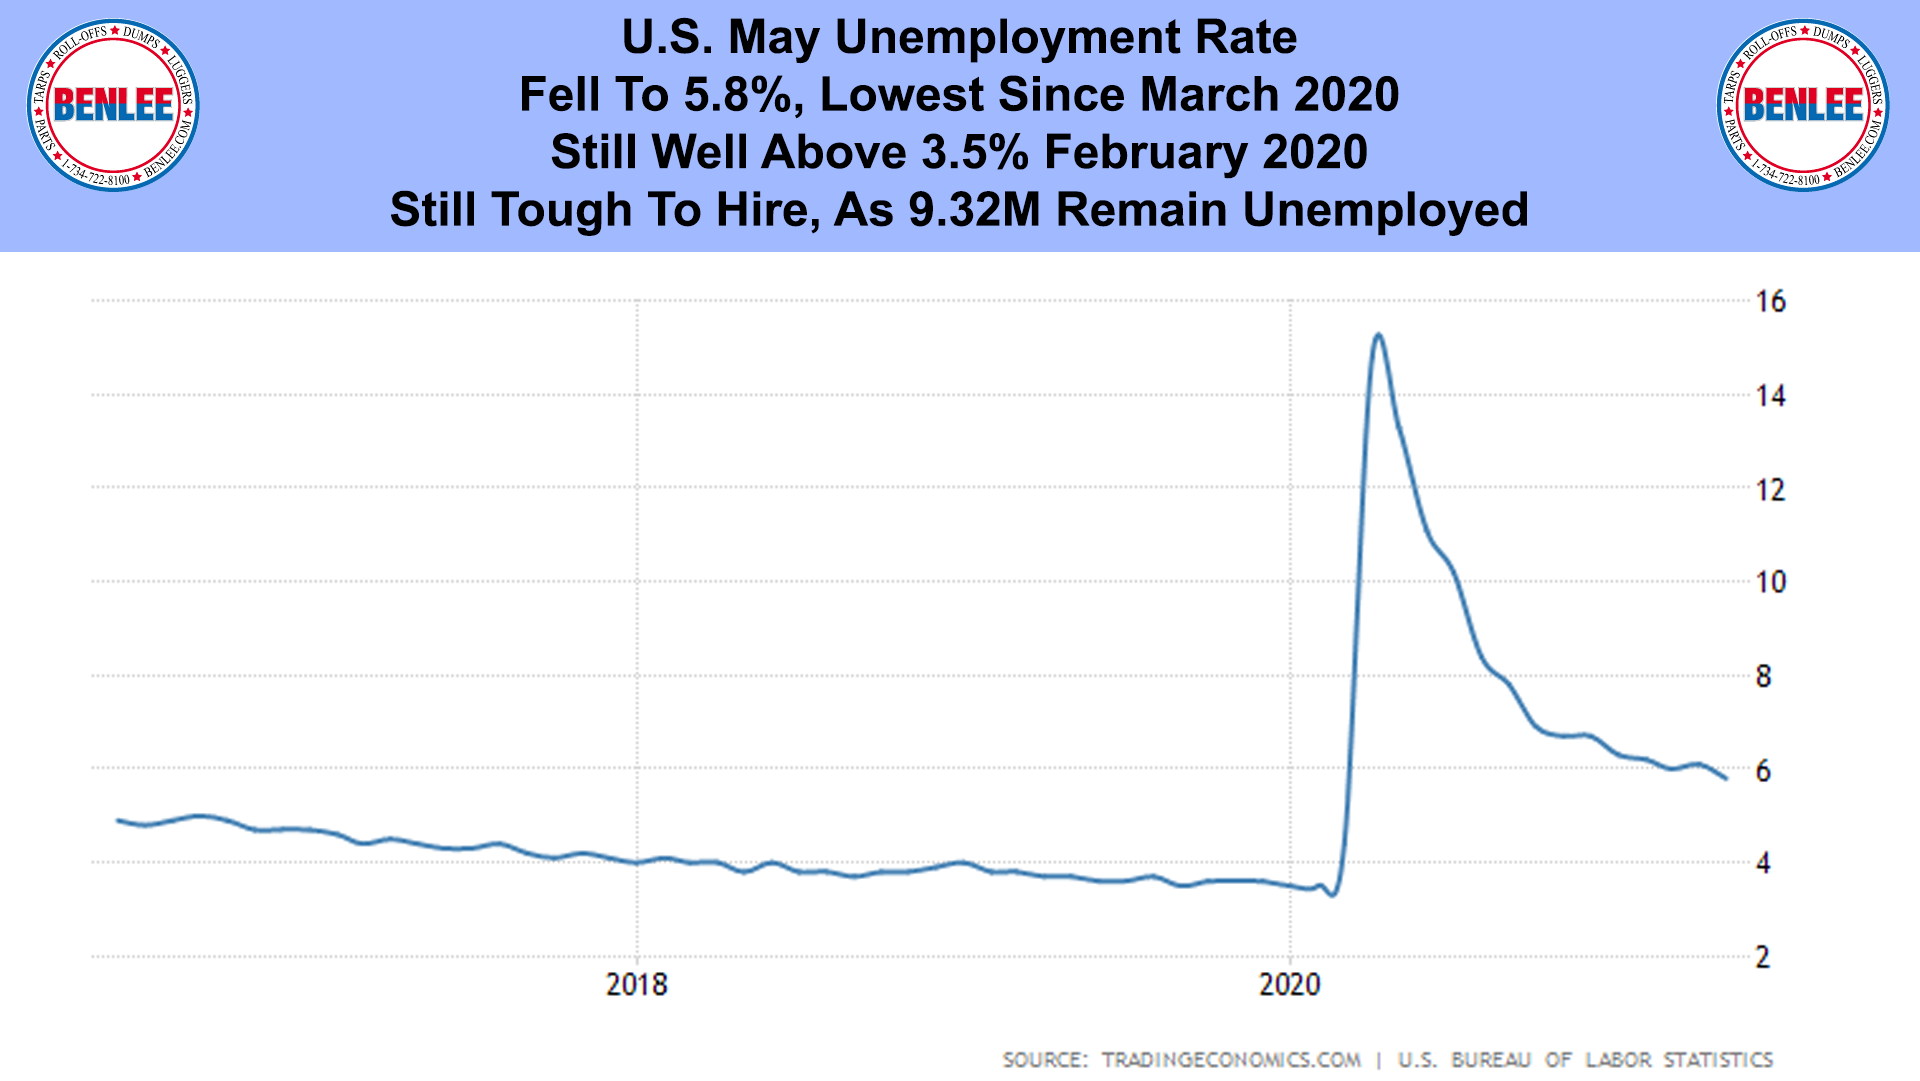 U.S. May Unemployment Rate